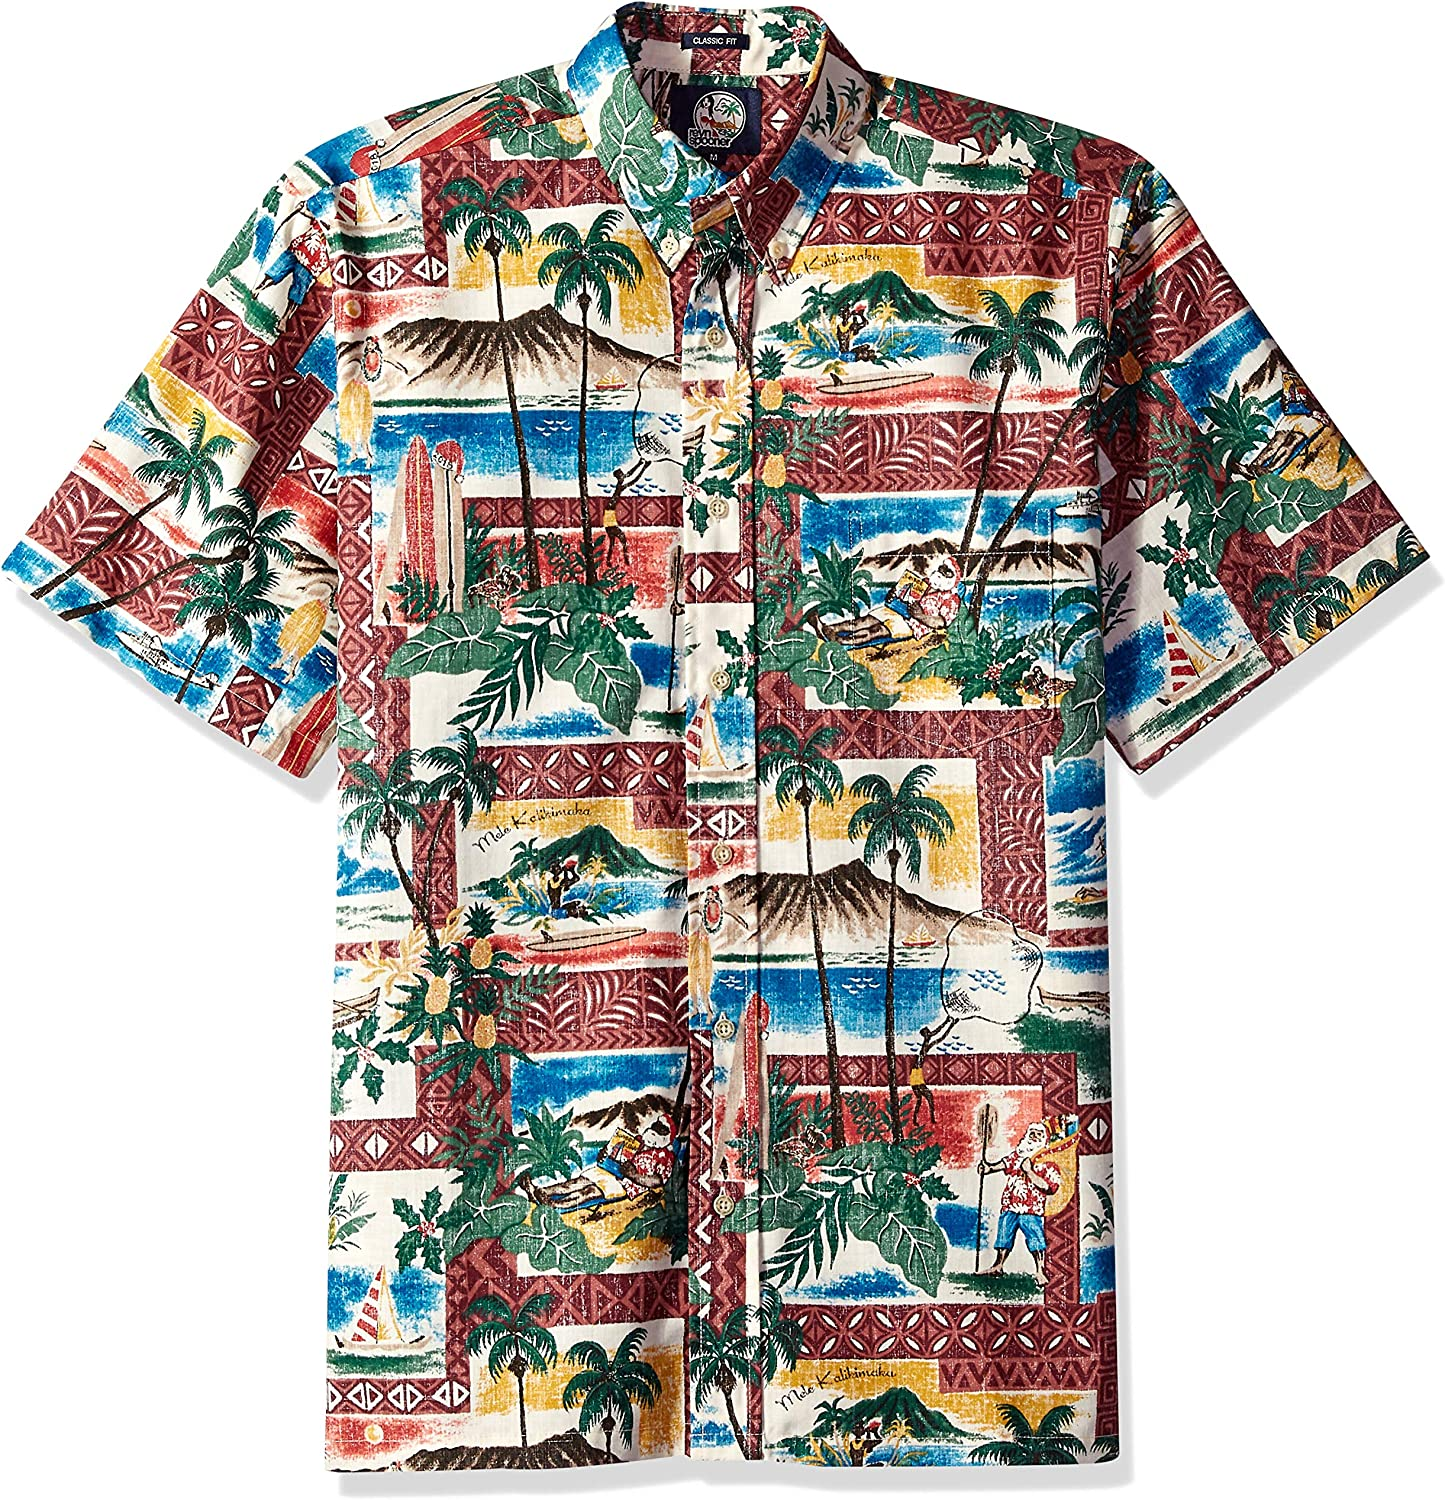 Reyn Spooner Men's Super-cheap Christmas Fit Classic Kloth Shirt Discount is also underway